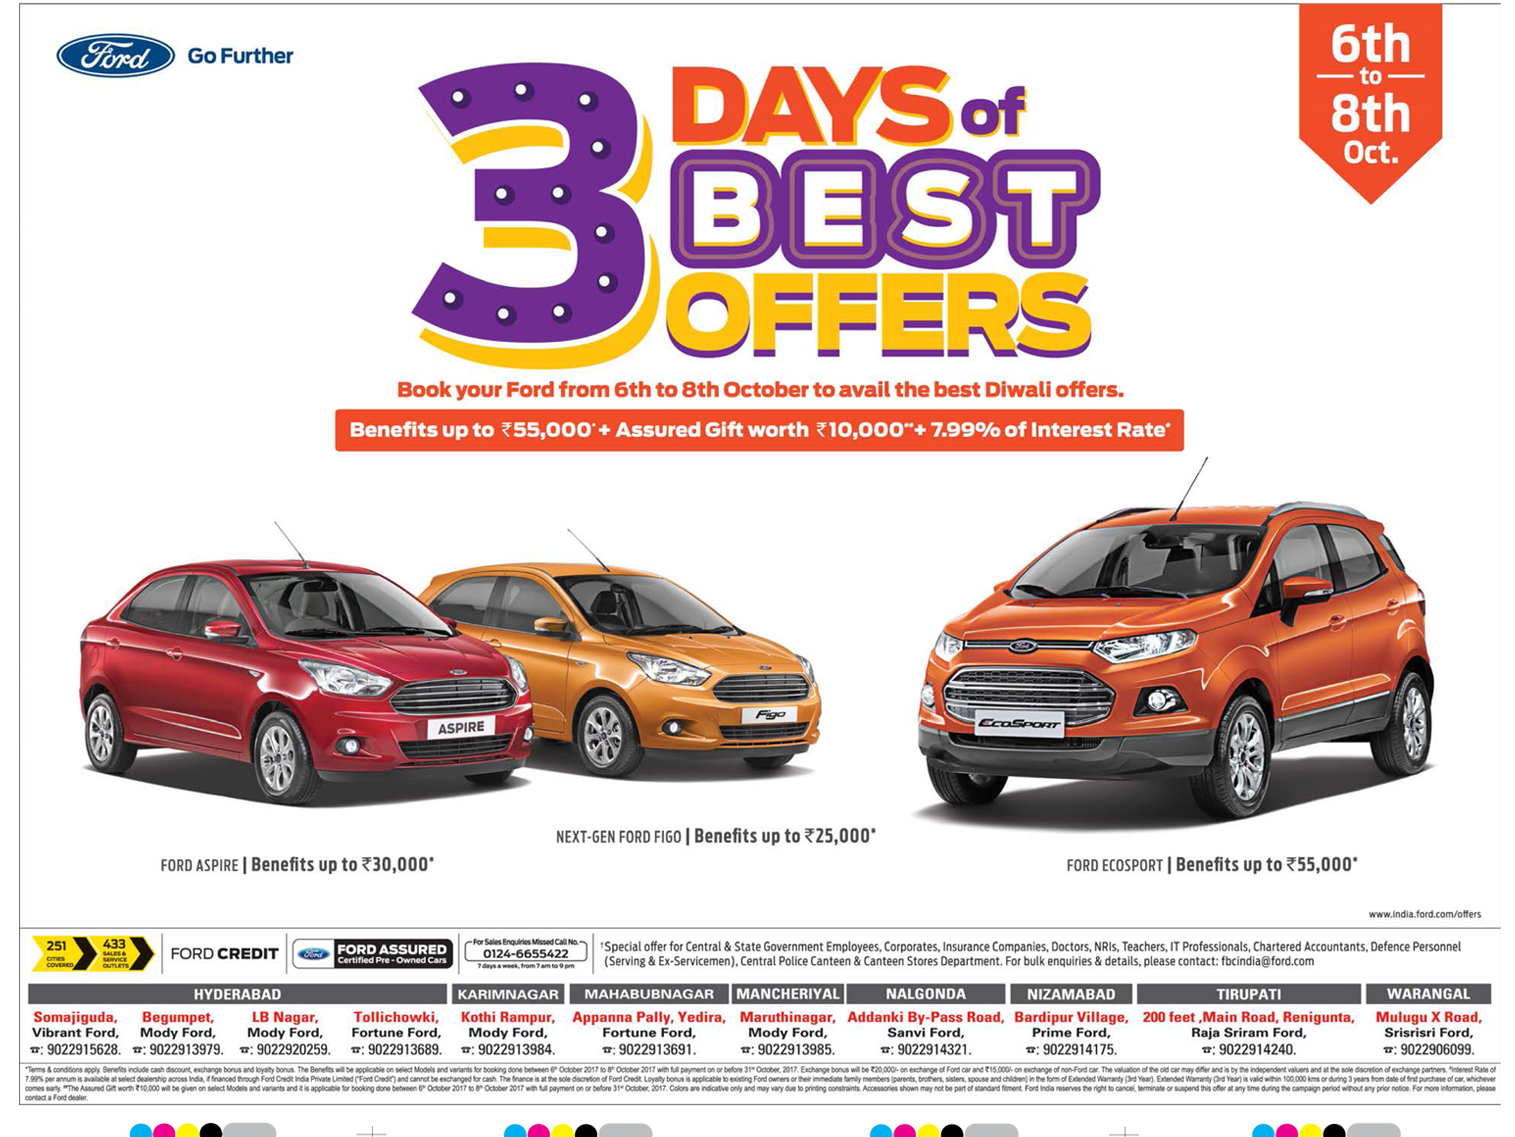 Ford 3 Days Of Best Offers Book Your From 6th To 8th October To Avail The Best Diwali Offers Ad Ford Go Further Car Advertising Ads